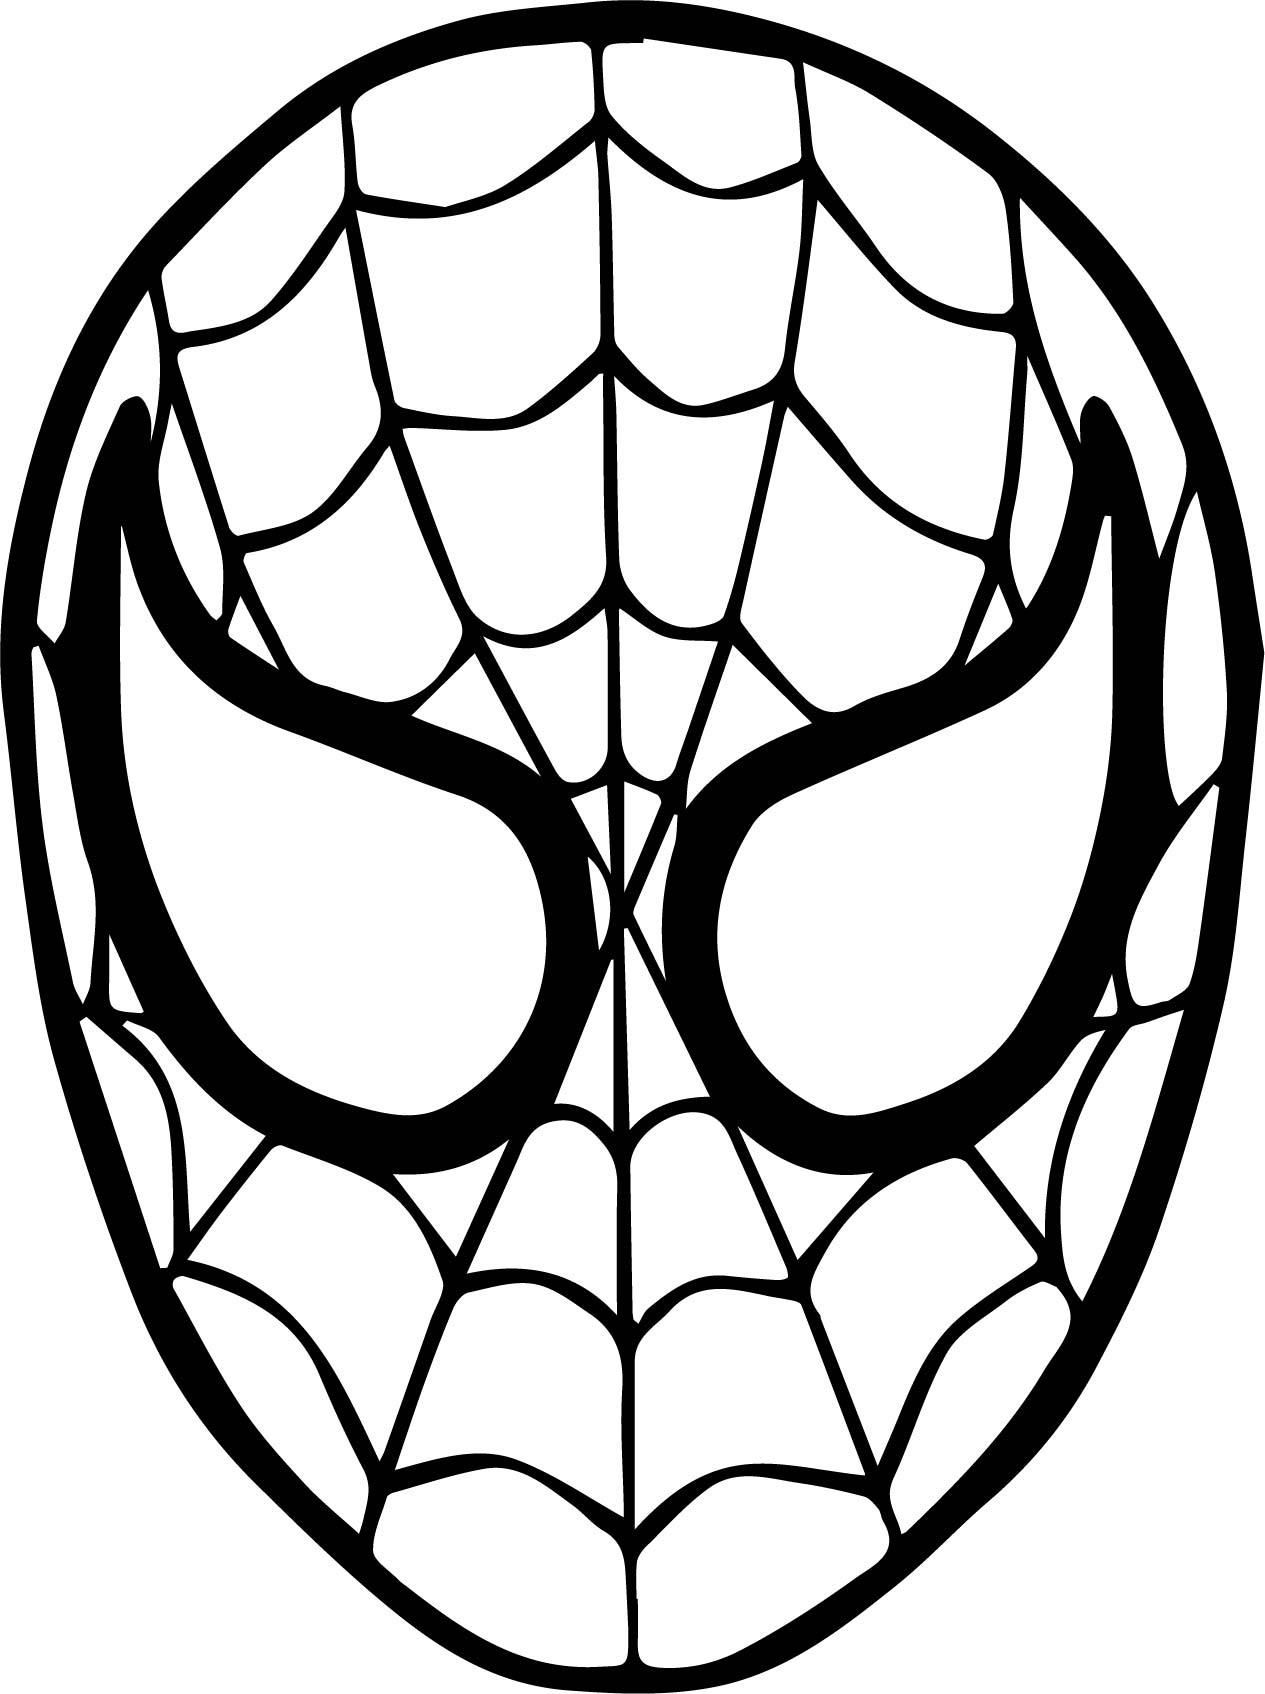 1265x1694 Spiderman Drawing Mask For Free Download